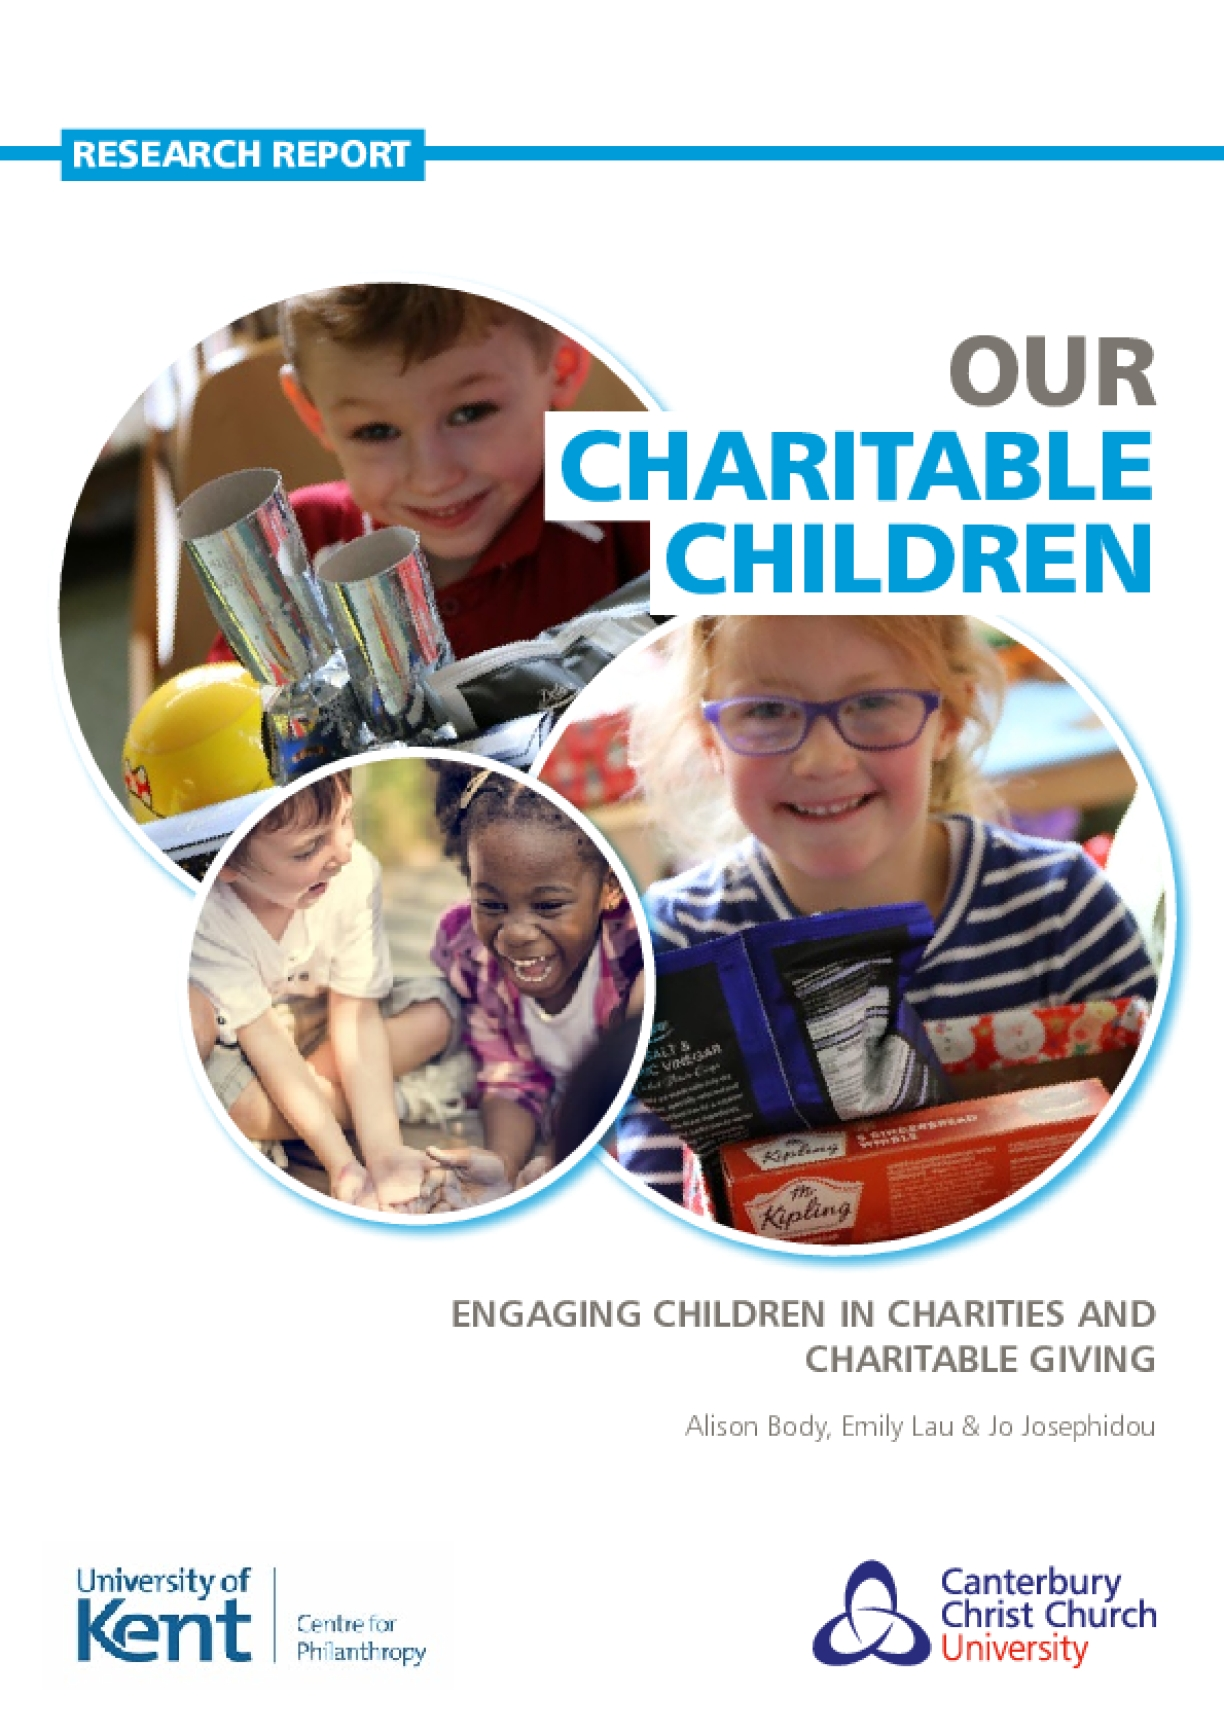 Our Charitable Children: Engaging Children in Charities and Charitable Giving